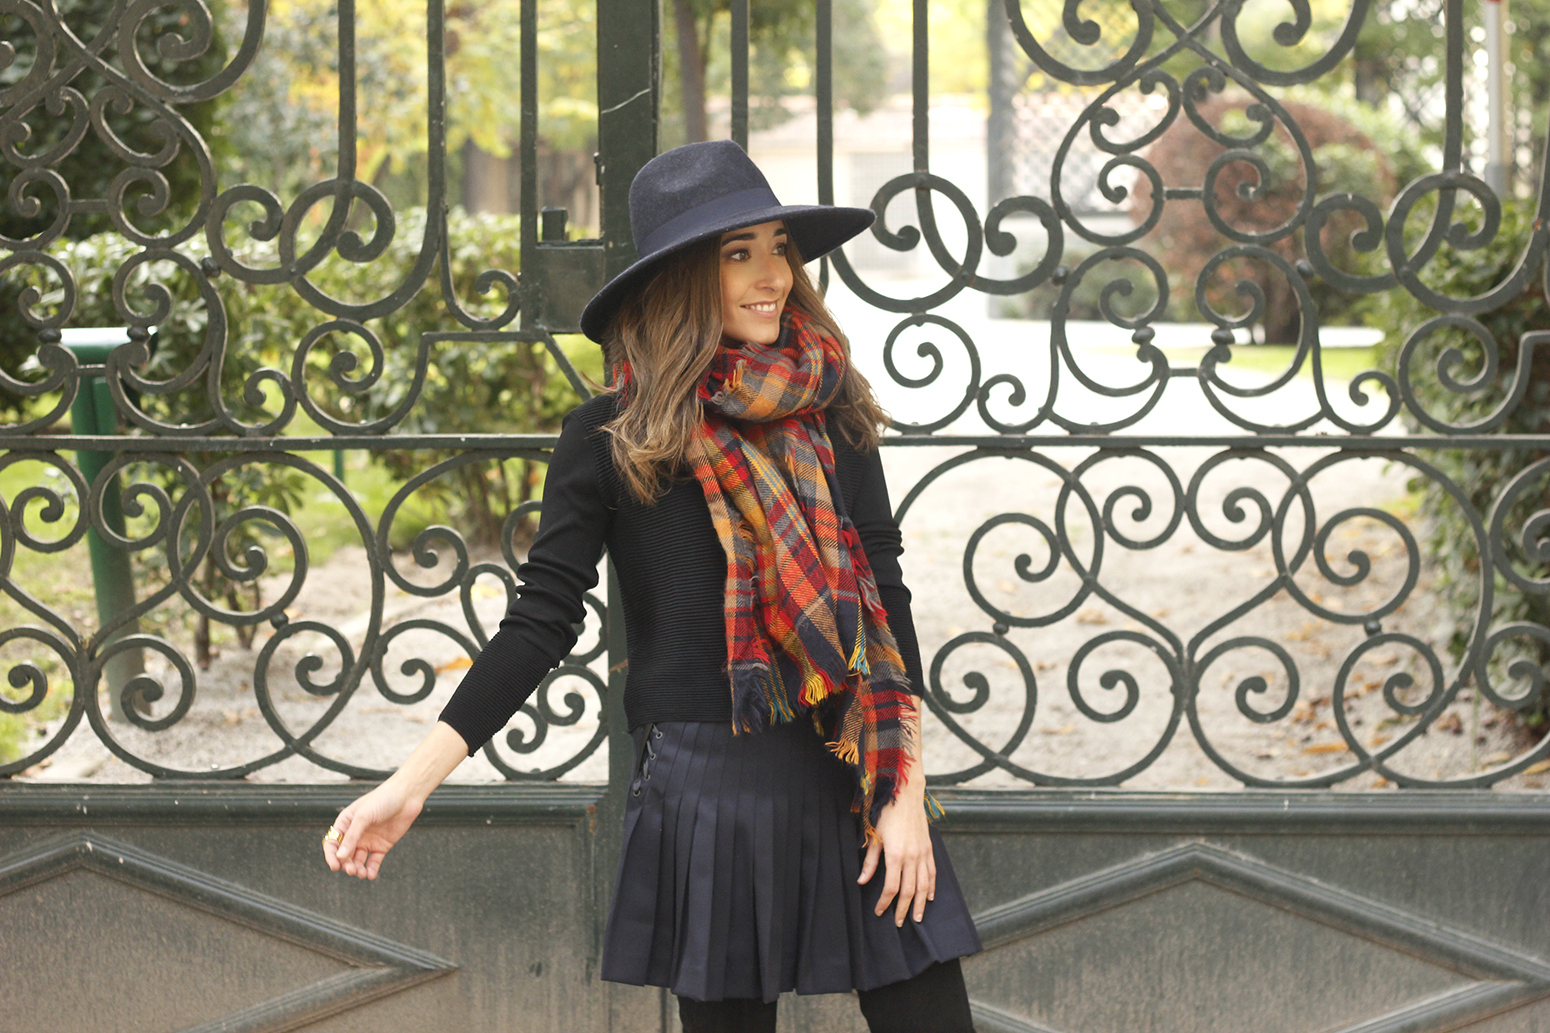 blue pleated skirt with over the knee boots blue hat black jersey outfit style 11